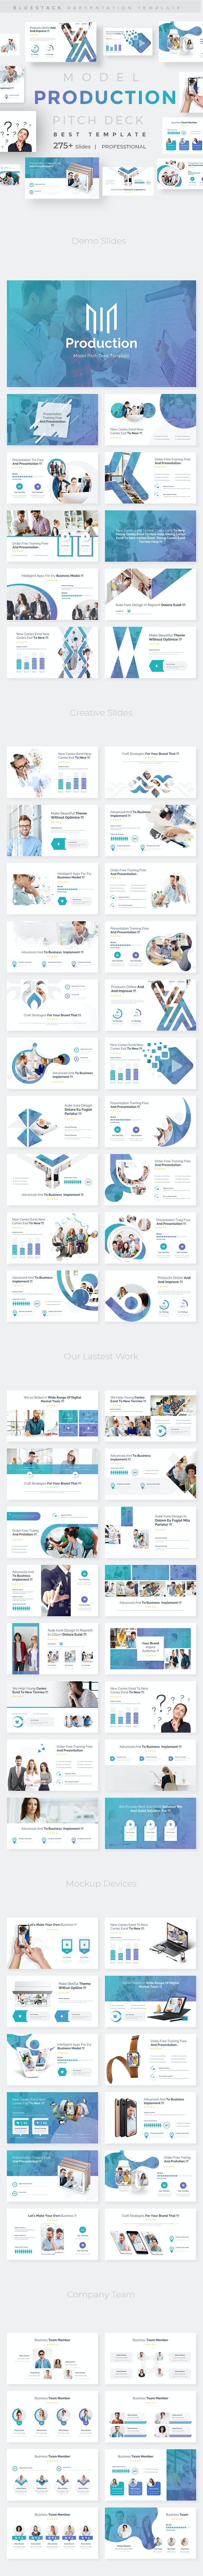 Model Production Pitch Deck Powerpoint Template - Business PowerPoint Templates